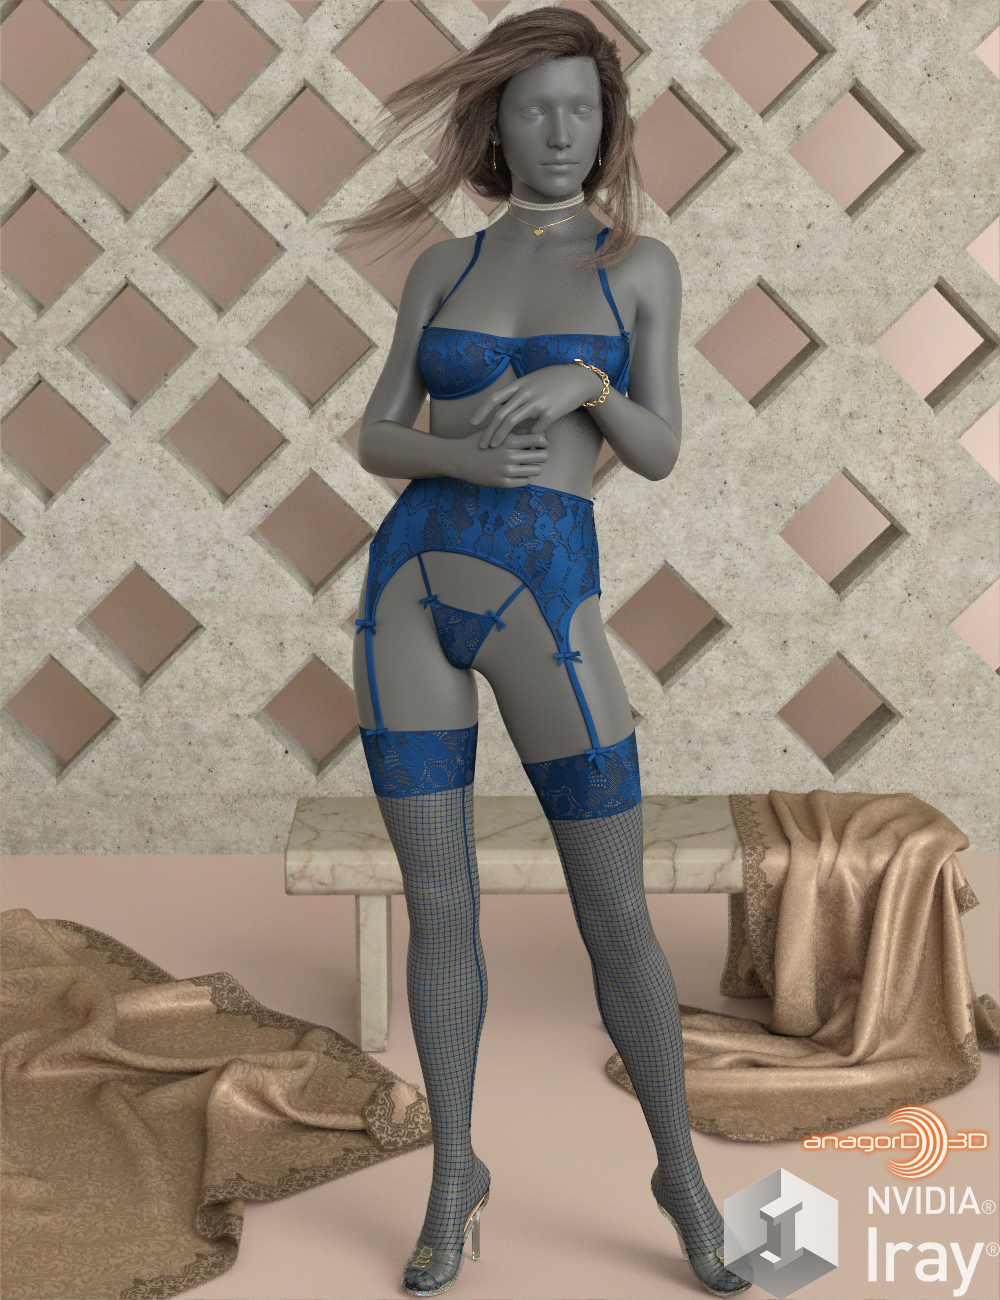 VERSUS - Secret Lingerie for G8F by Anagord